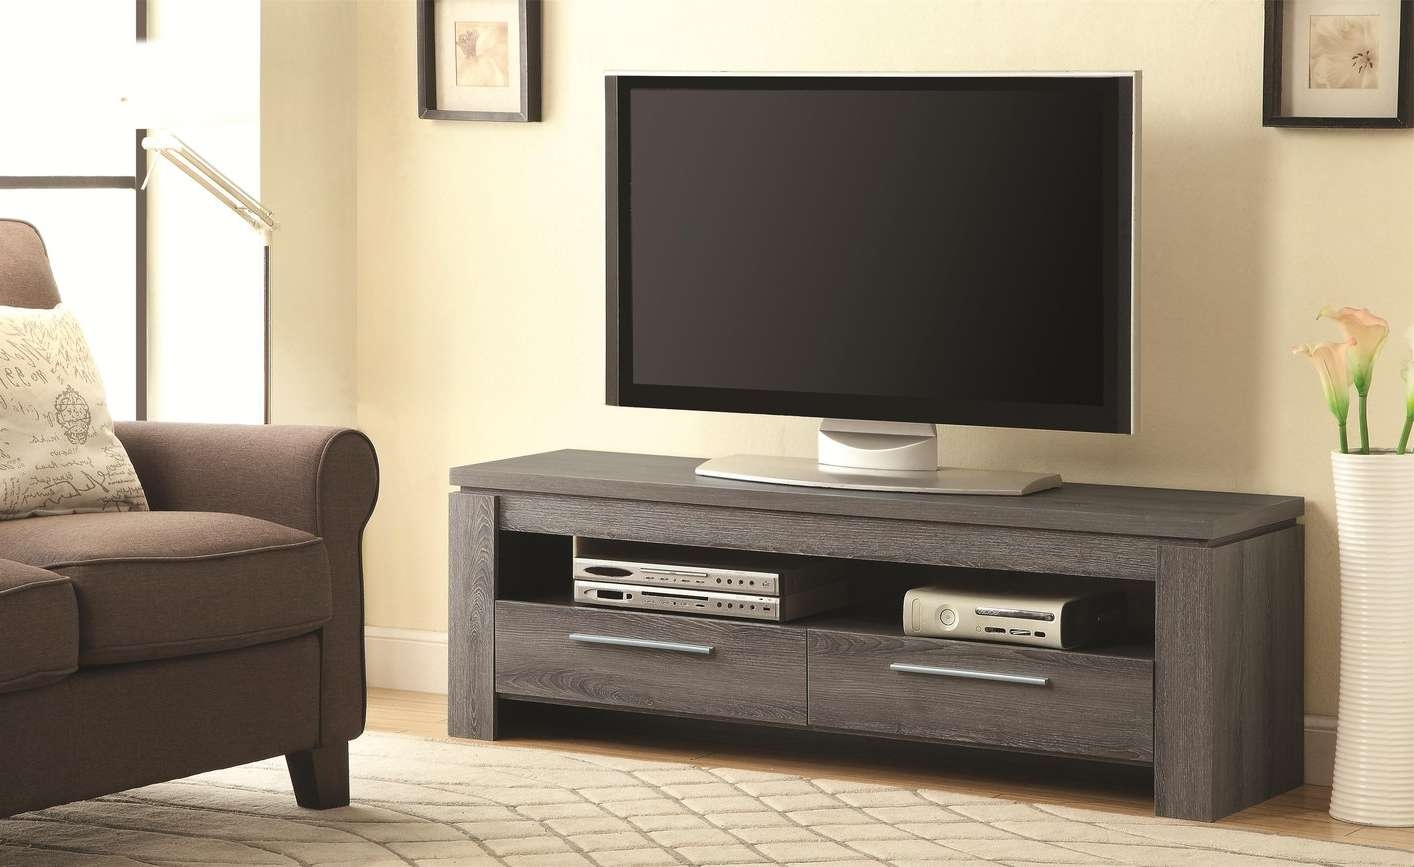 Grey Wood Tv Stand – Steal A Sofa Furniture Outlet Los Angeles Ca Pertaining To Grey Wood Tv Stands (View 3 of 15)